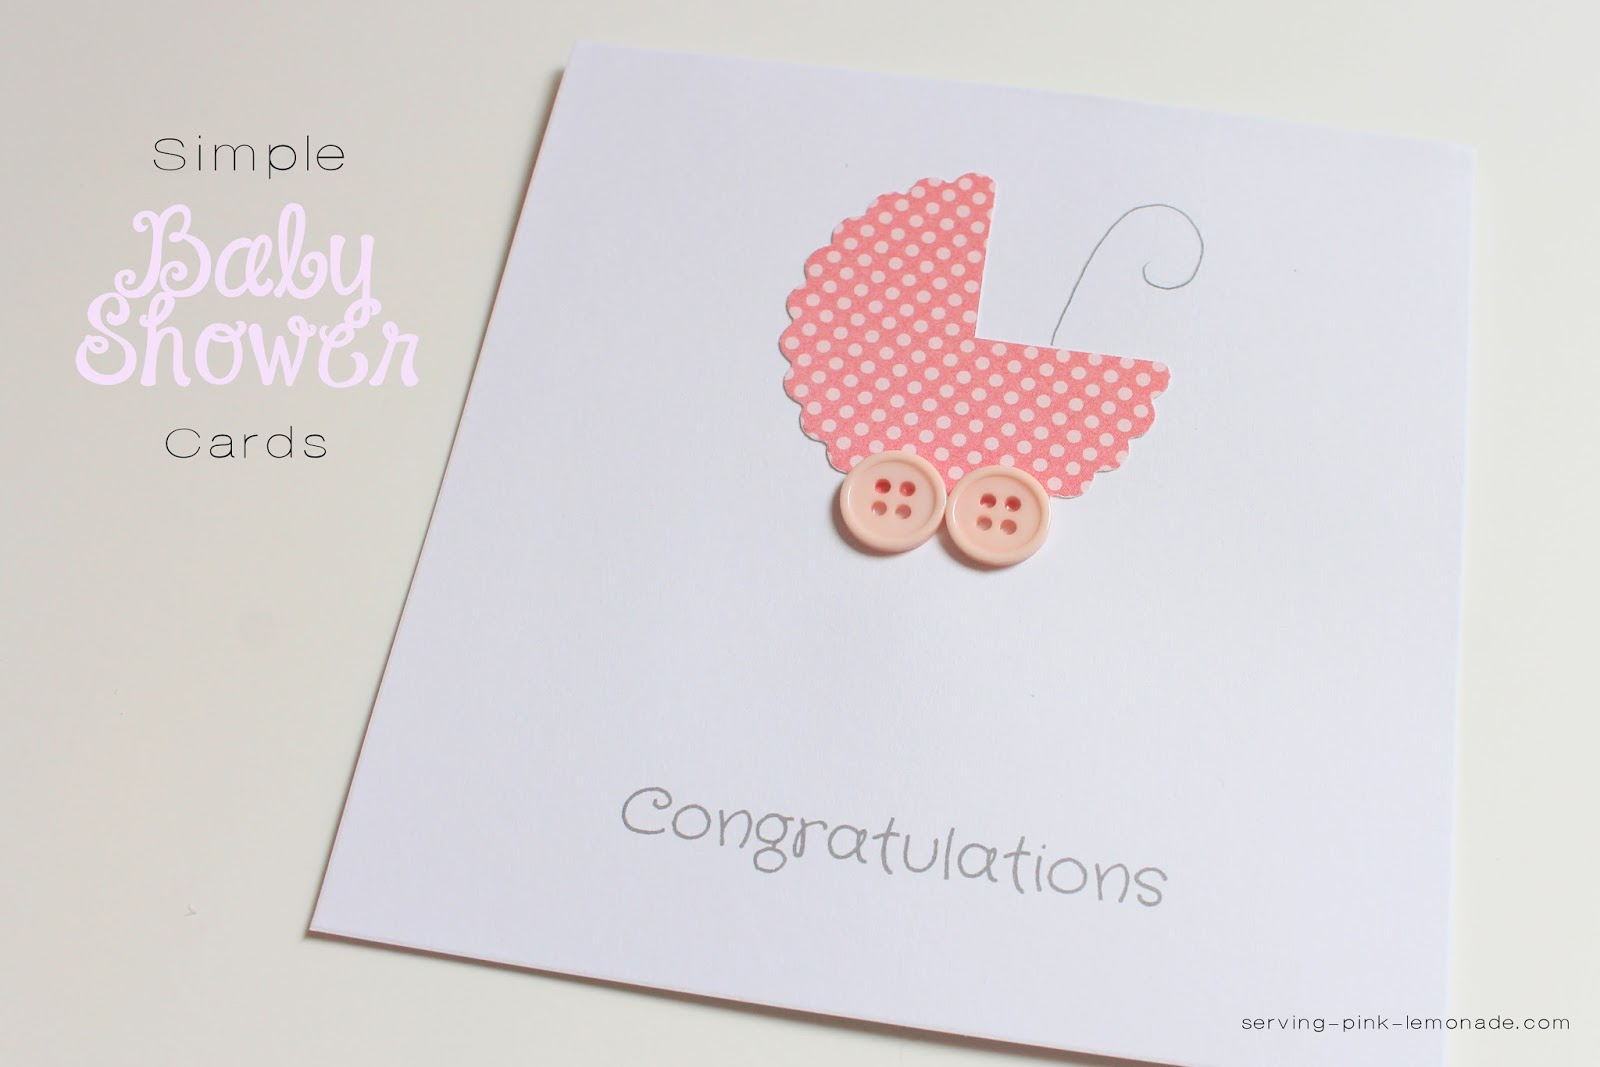 Full Size of Baby Shower:graceful Baby Shower Cards Image Designs Serving Pink Lemonade Simple Baby Shower Cards Simple Baby Shower Cards